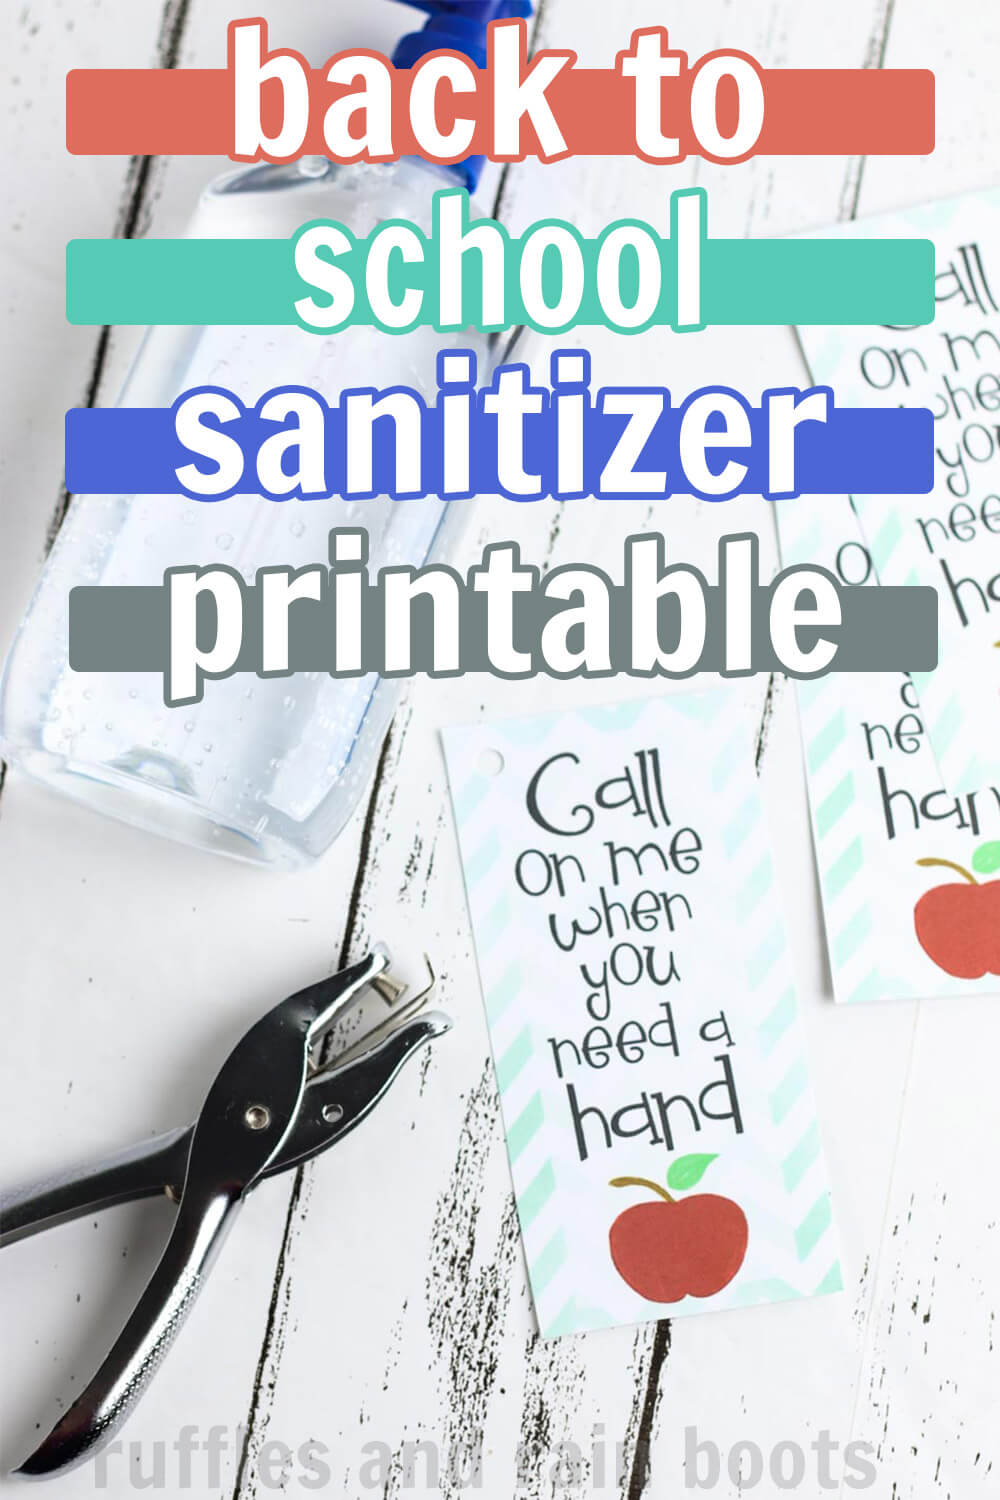 back to school hand sanitizer printable for teacher with text overlay which reads back to school sanitizer printable